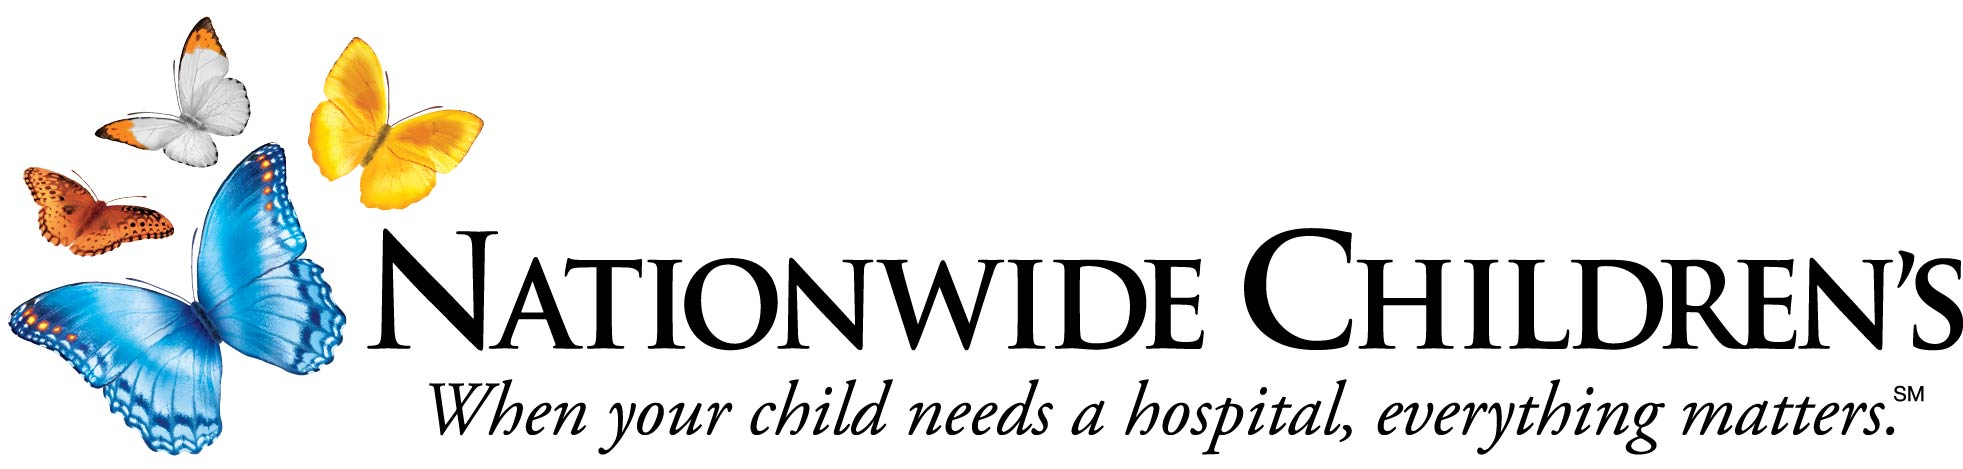 nationwide-childrens